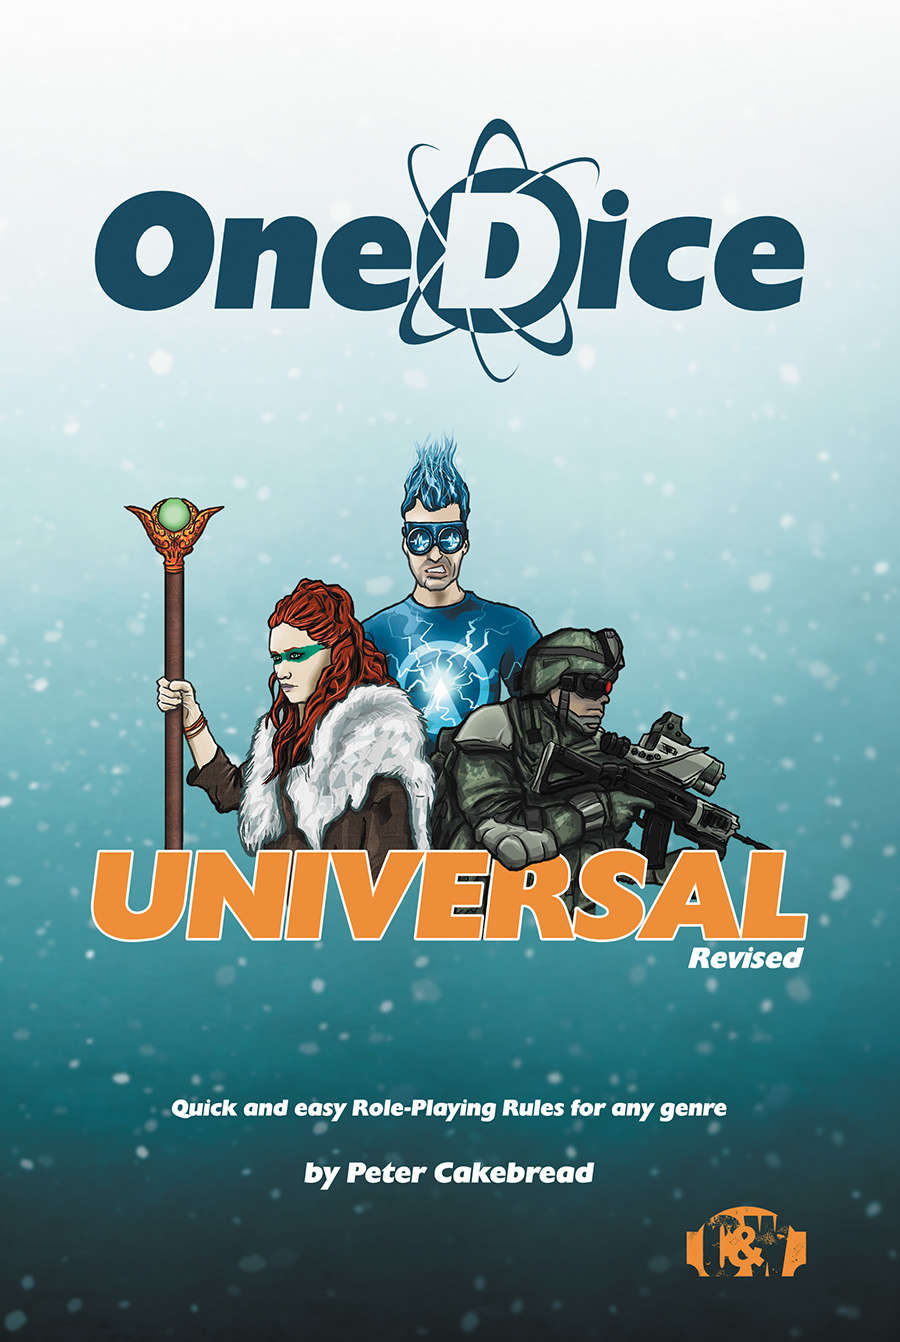 OneDice Universal Revised cover depicting a fantasy, superhero, and sci-fi character on a starry background.